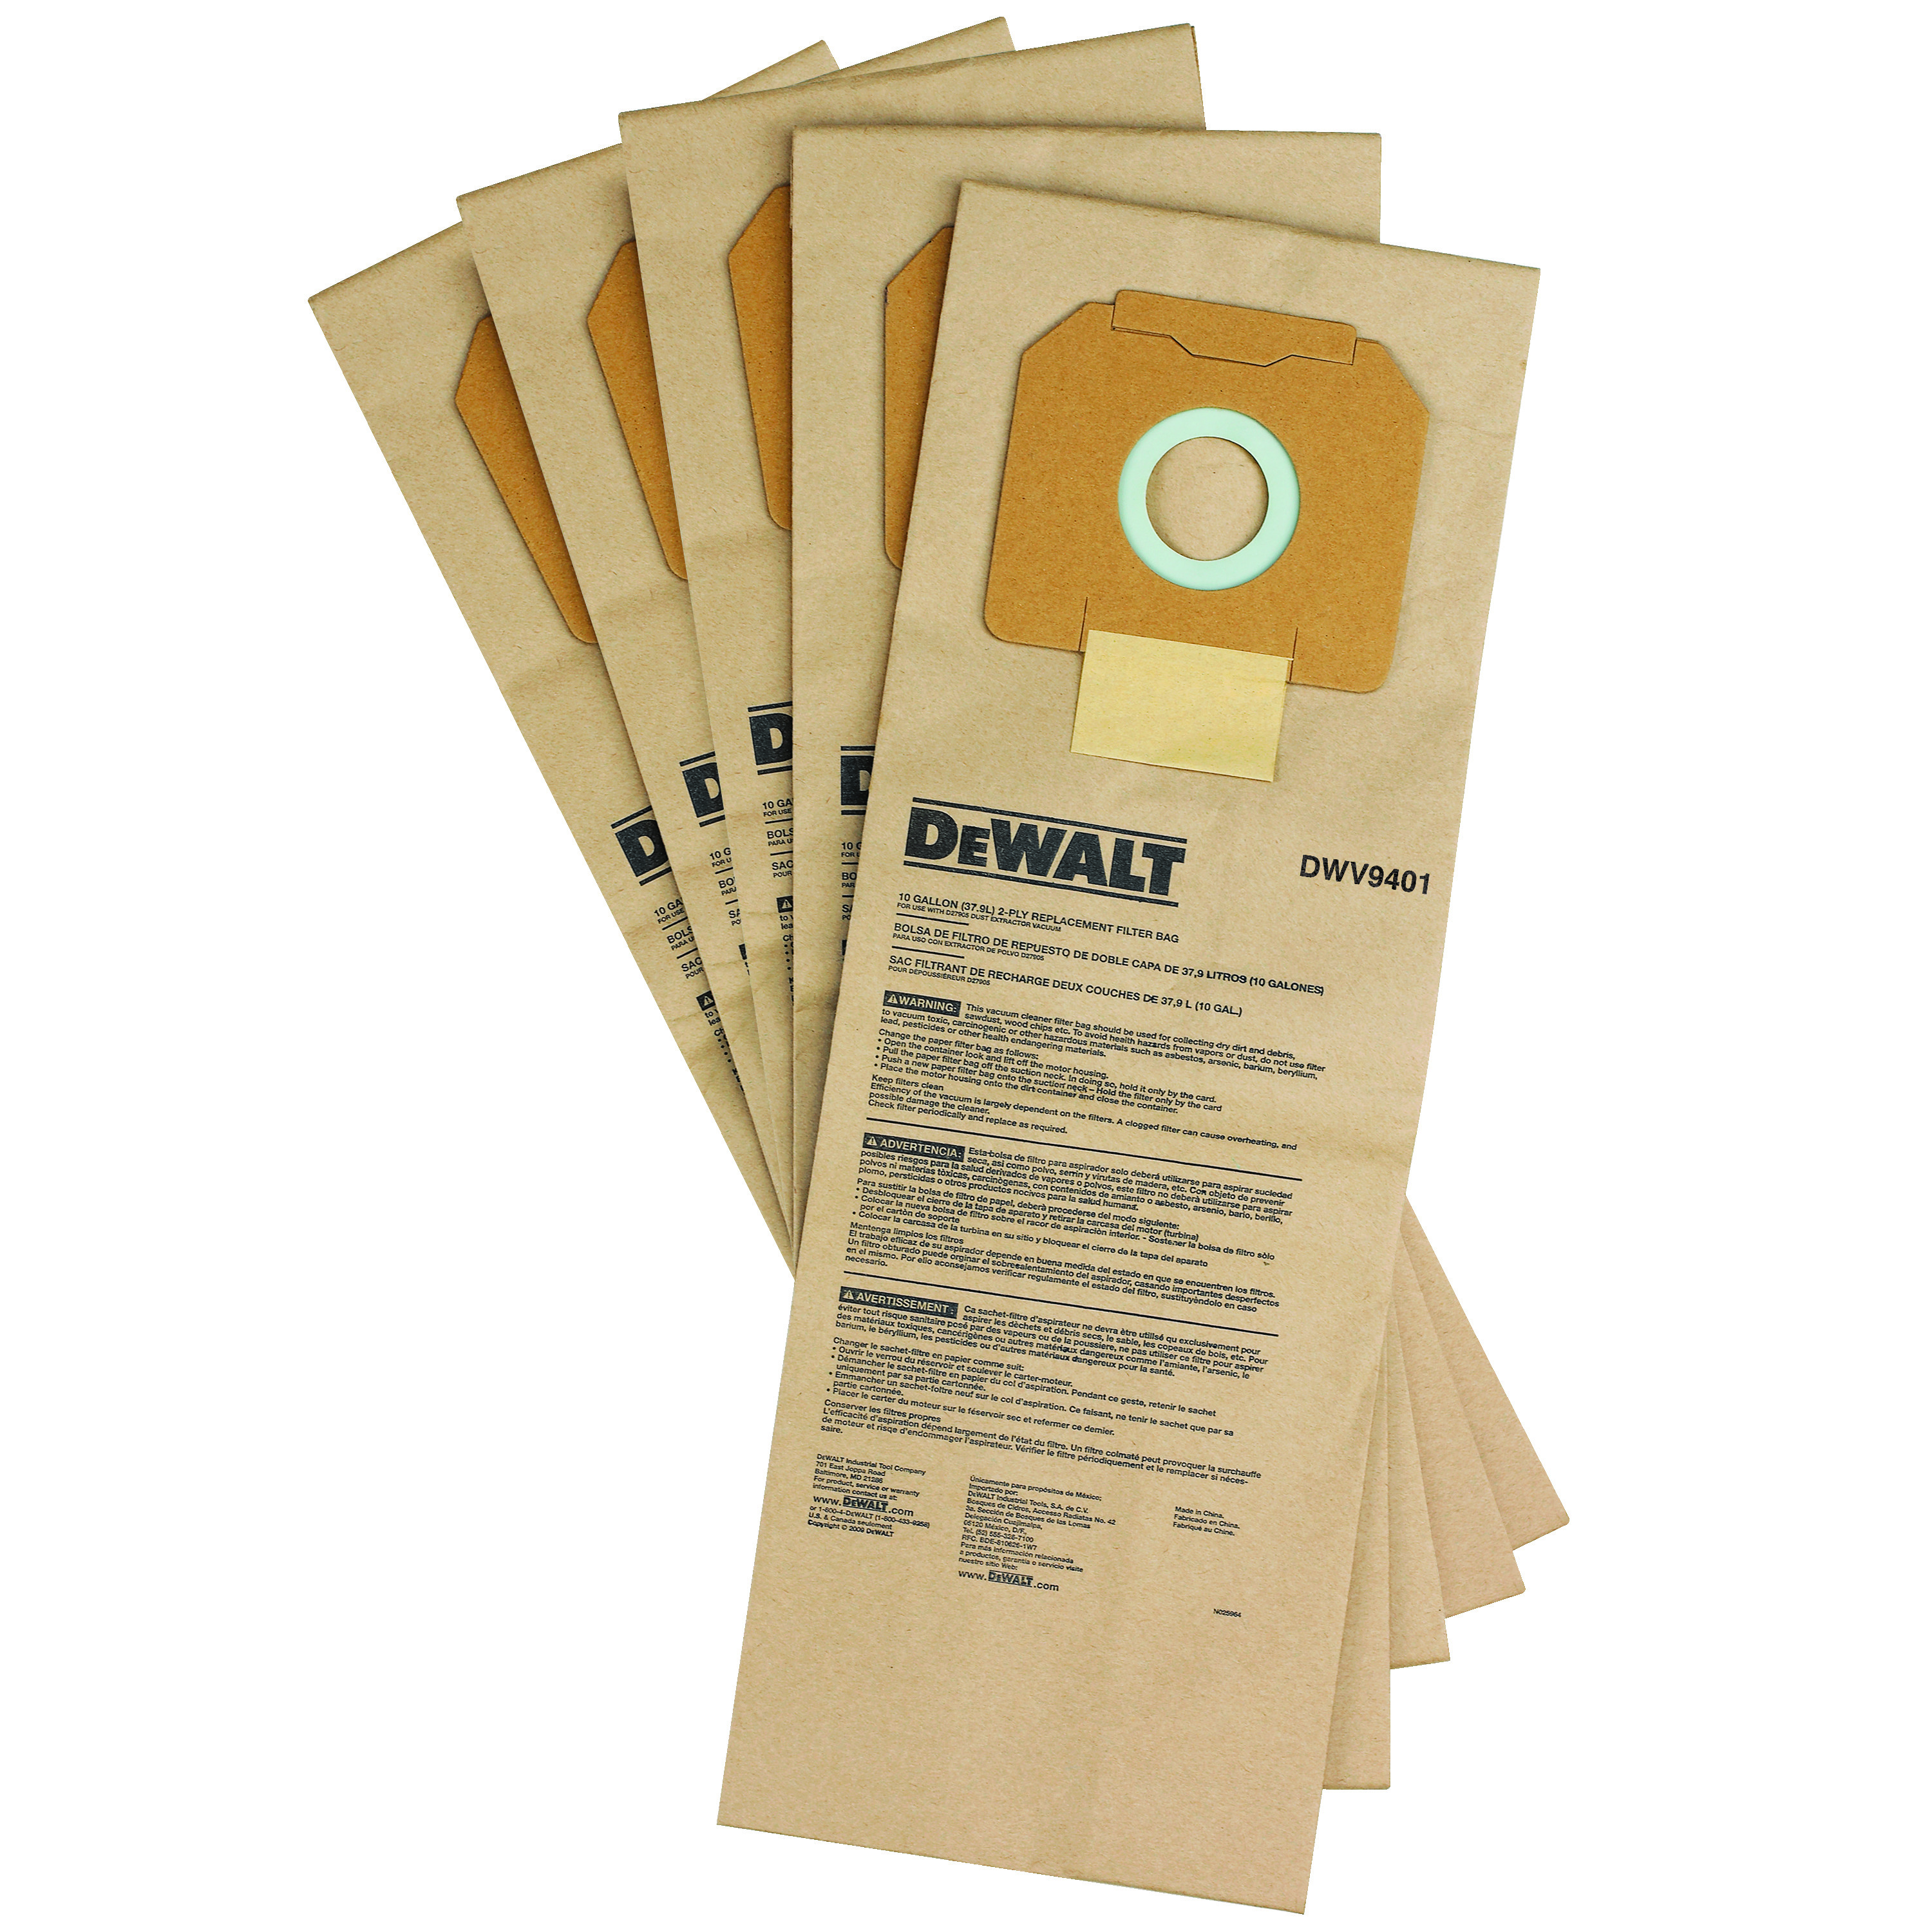 DeWALT® DWV9401 Non-Reusable Paper Bag, 1-7/8 in H x 8-1/2 in W x 3-1/2 in D, Paper, For Use With DWV012 Type 1 Dust Extractor